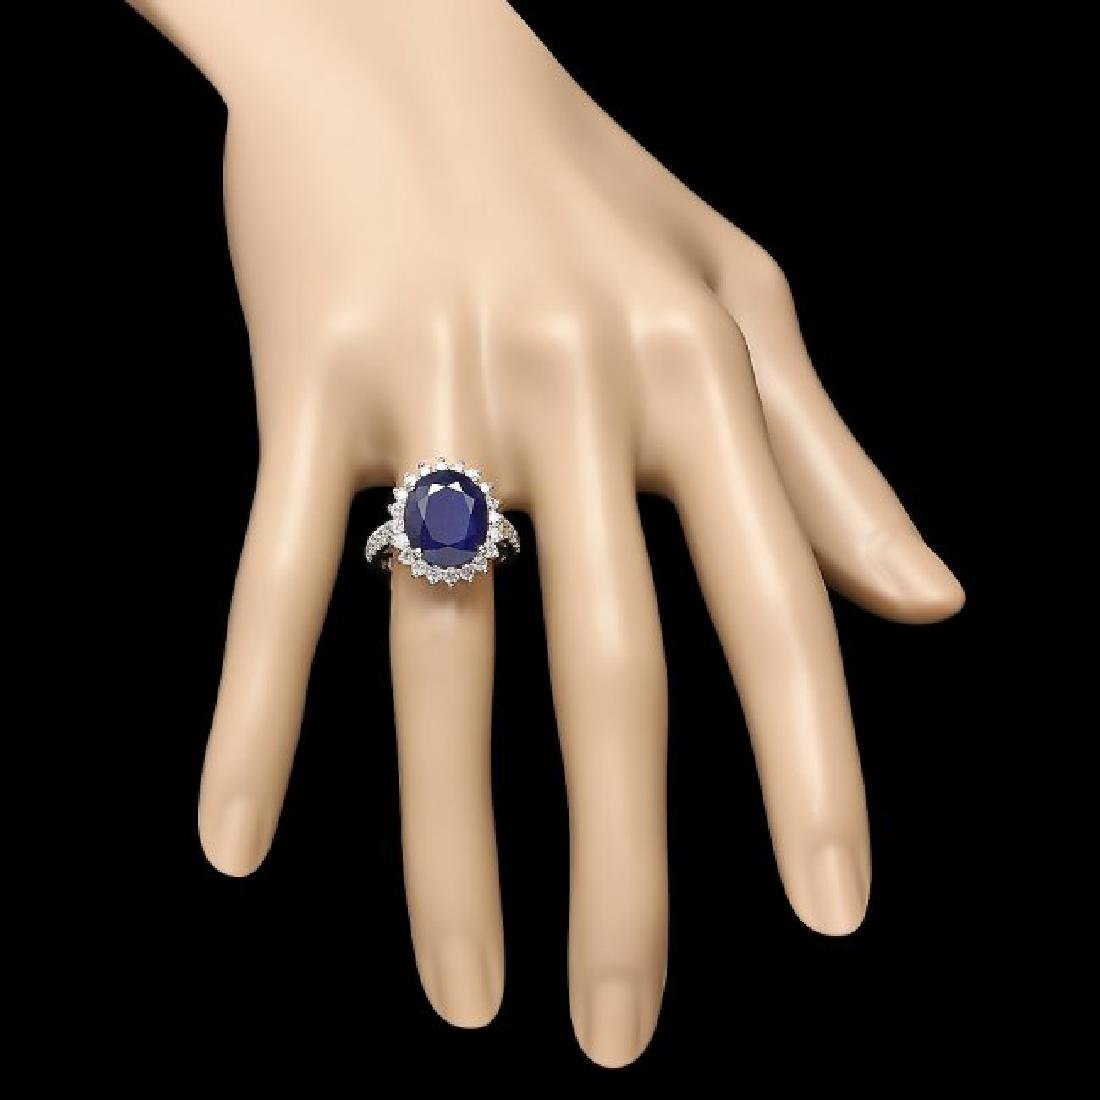 14k Gold 8.00ct Sapphire 1.15ct Diamond Ring - 4